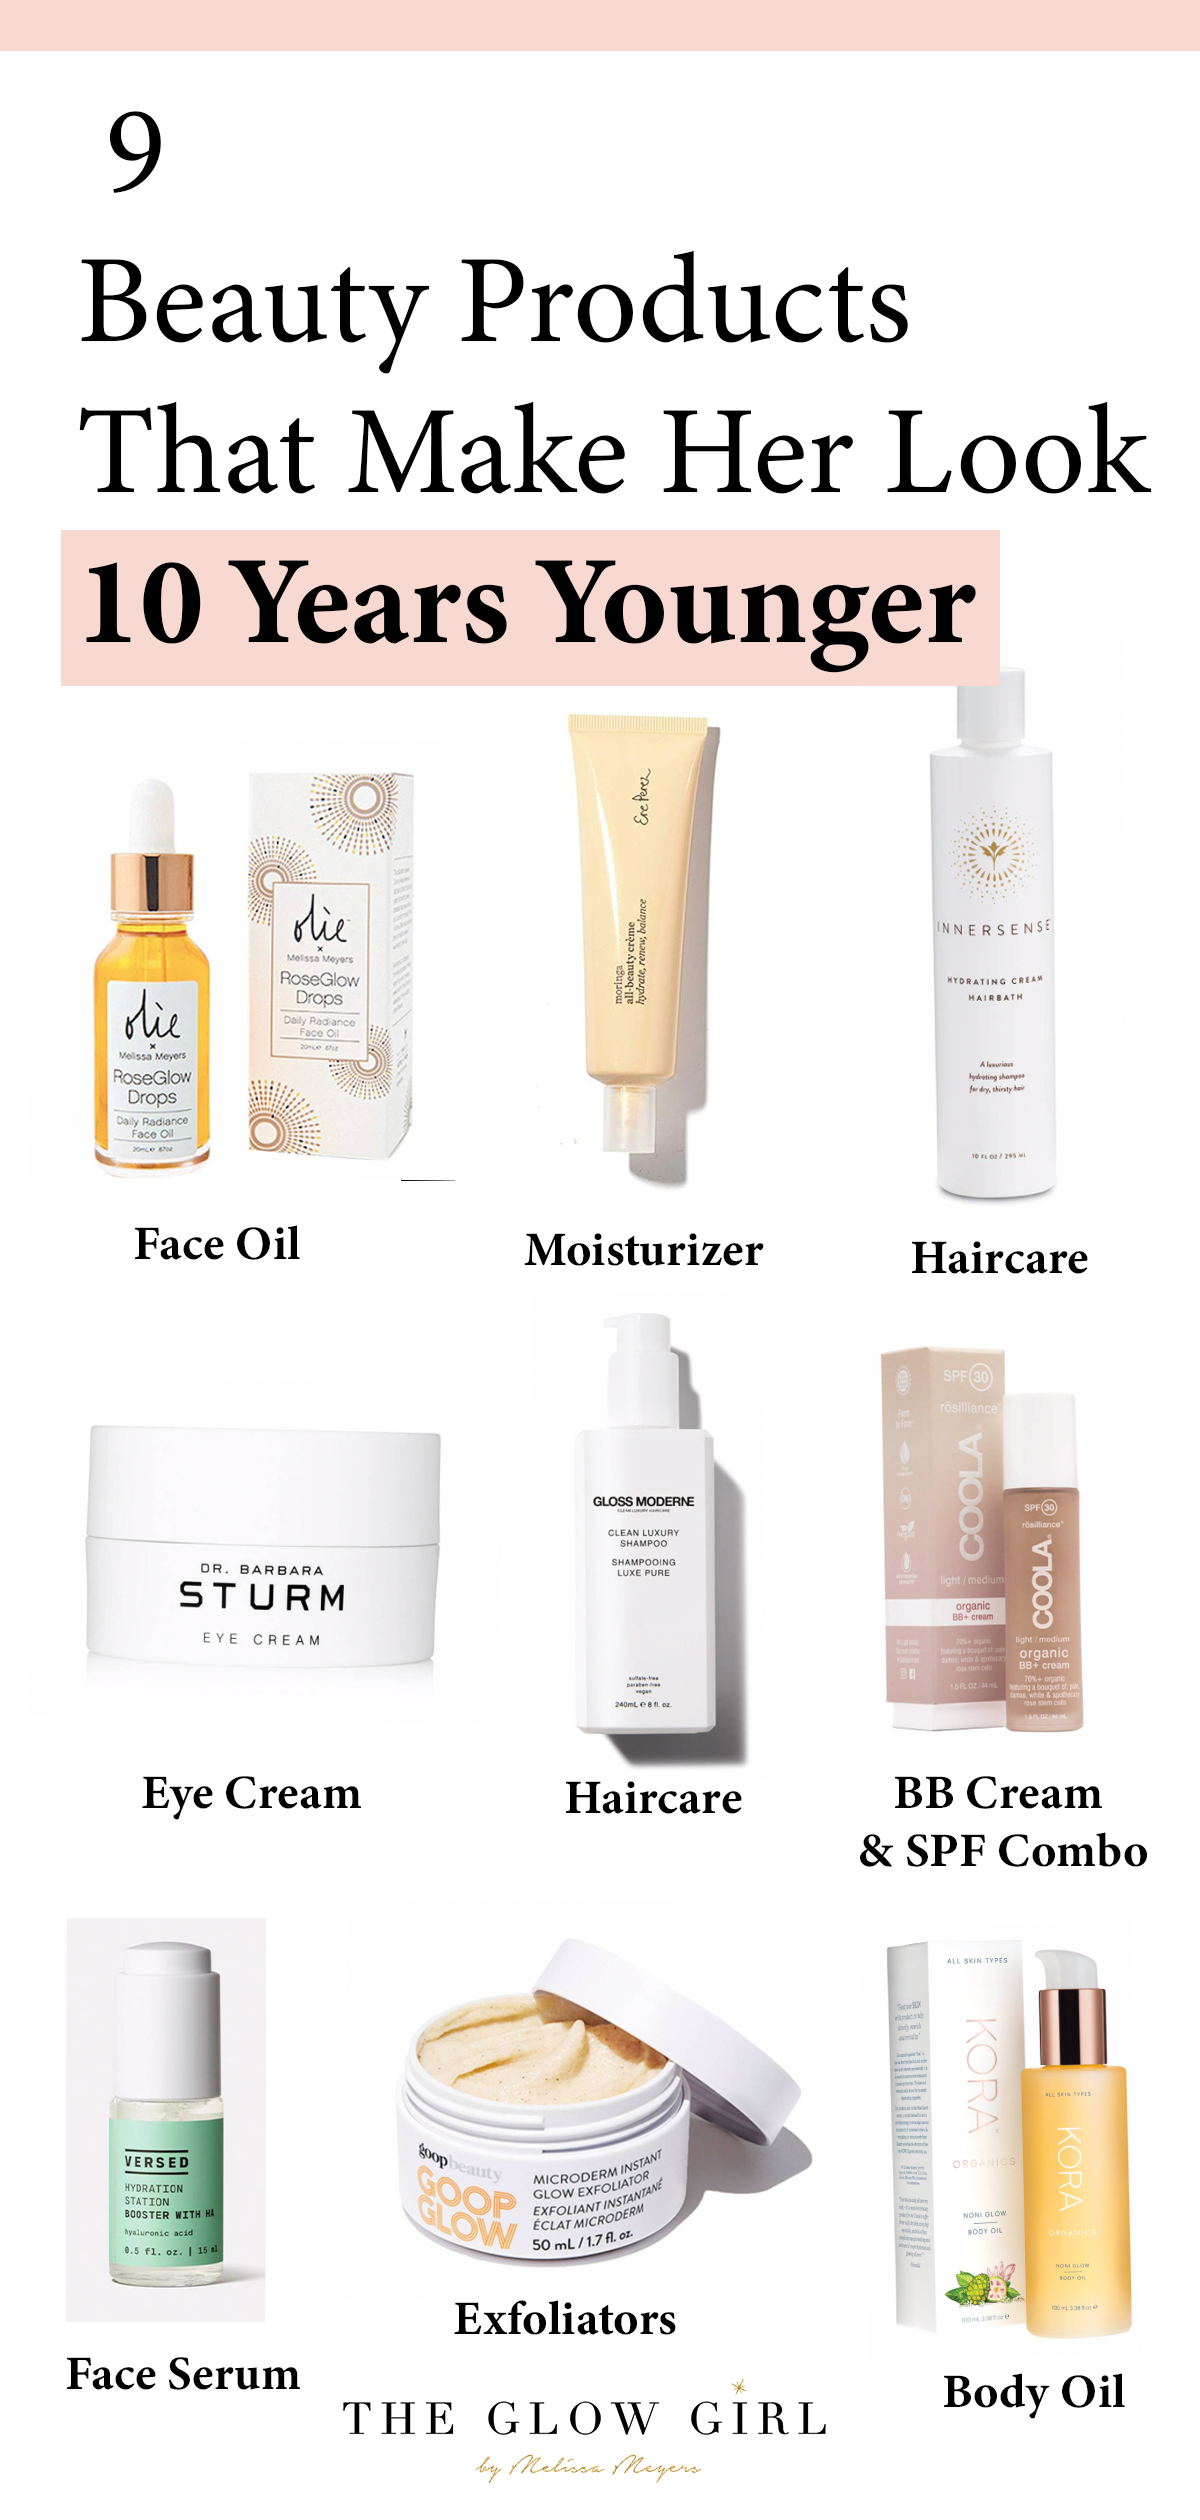 Who What Wear Feature A 54 Year Old Shares 9 Beauty Products That Make Her Look 10 Years Younger The Glow Girl By Melissa Meyers Oil Face Moisturizer Top Beauty Products Makeup Hacks Tutorials